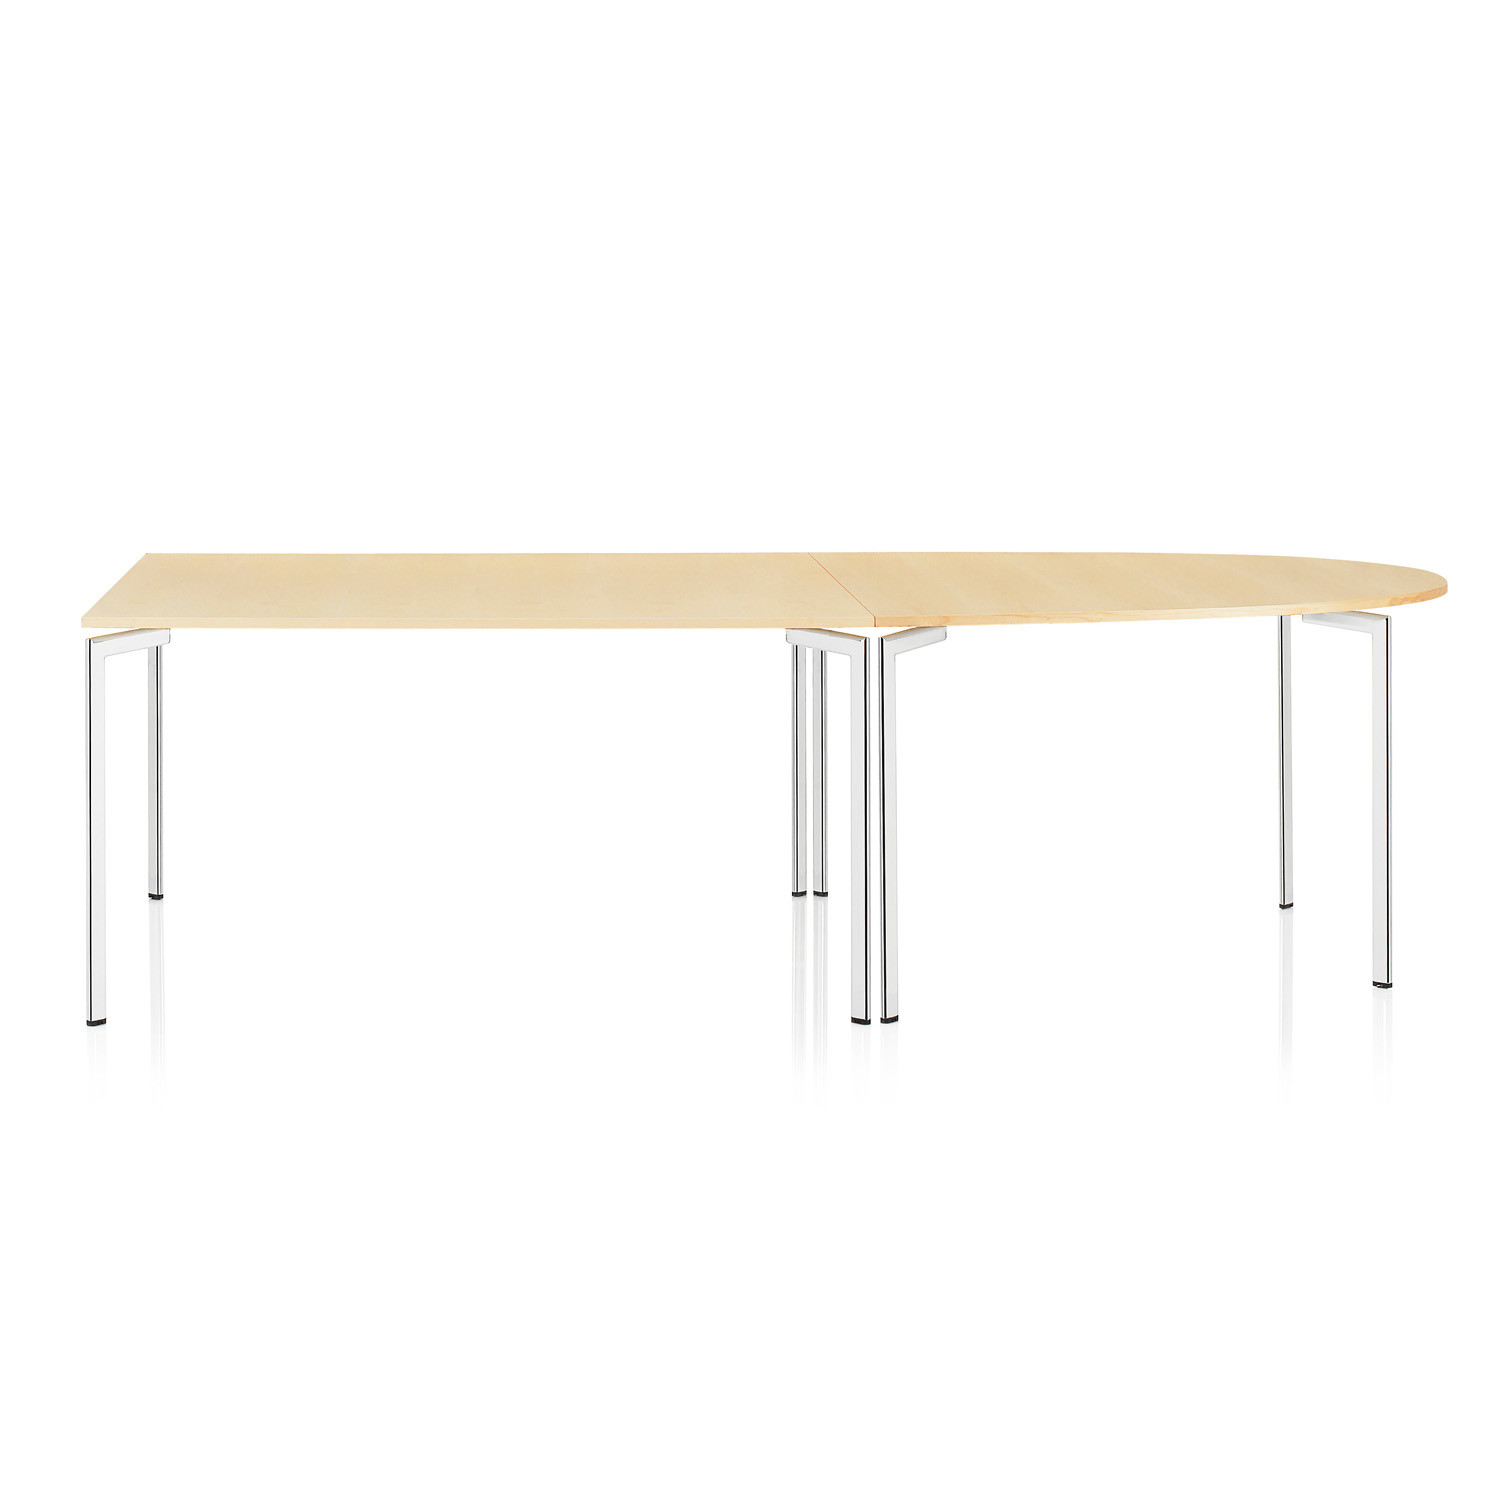 Lammhults Campus Conference Tables